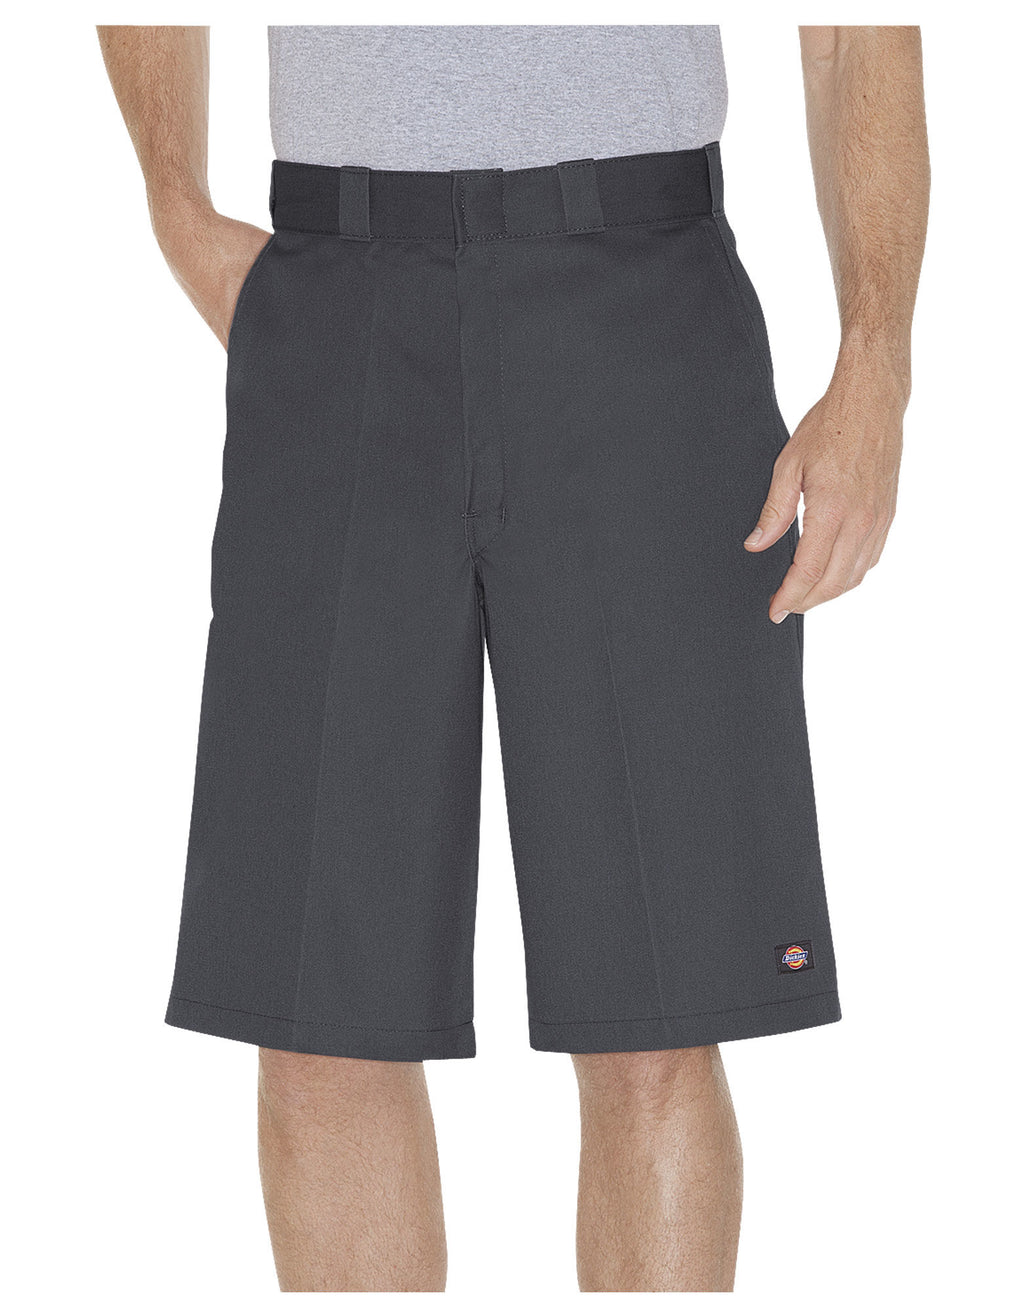 Dickies Men's Multi-Use Pocket Work Short Closeout-5